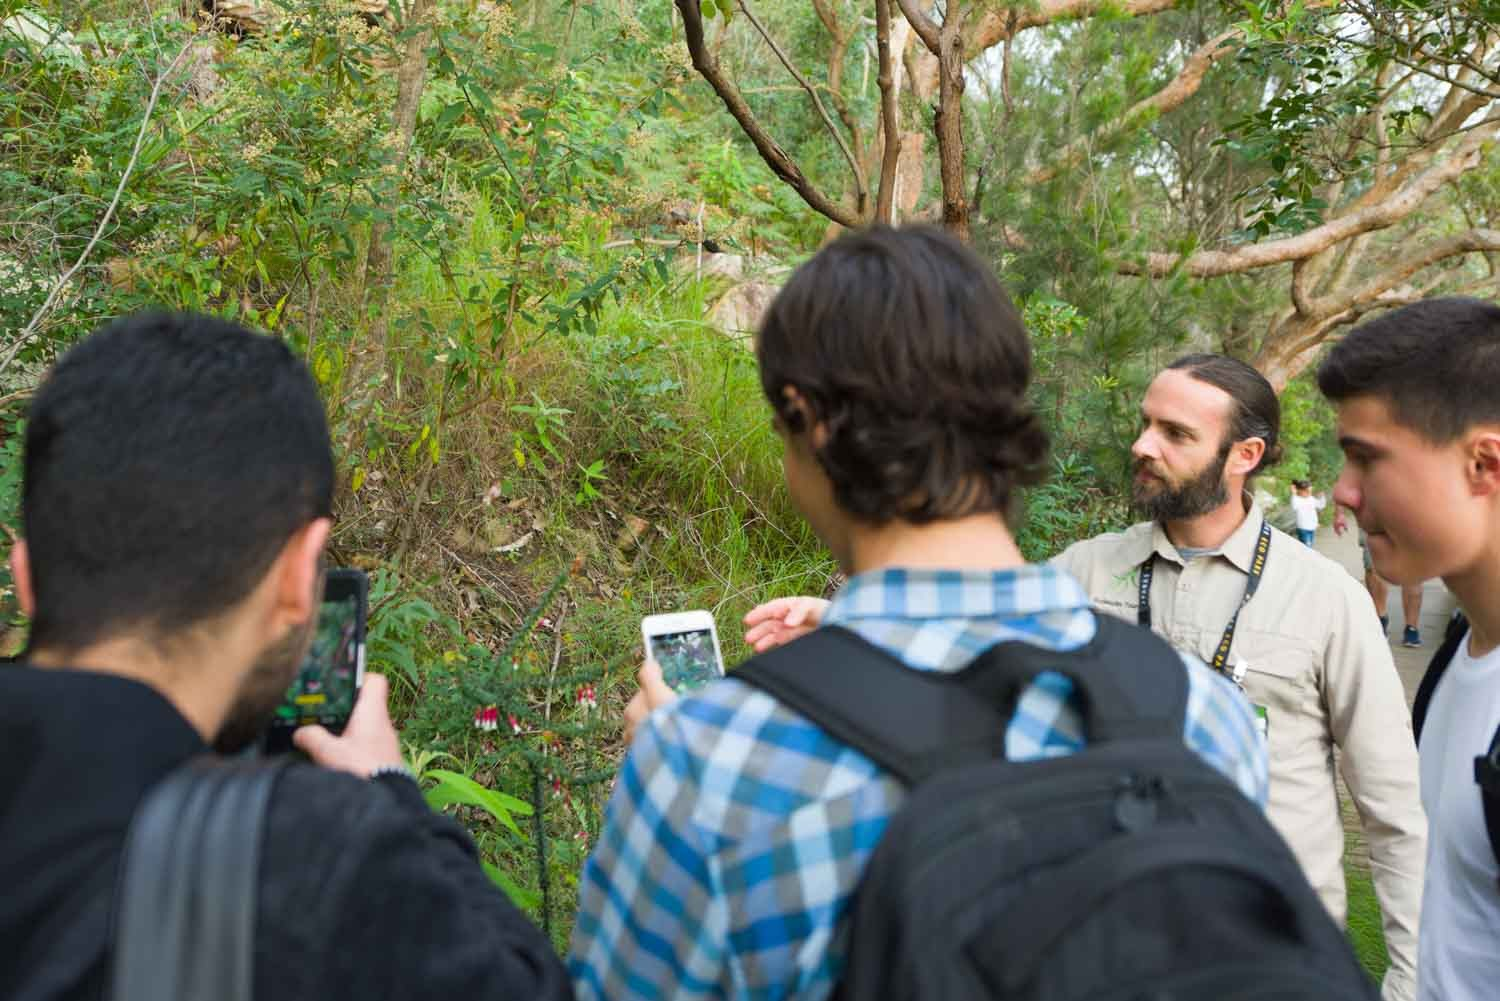 Guide showing visitors wild native flowers